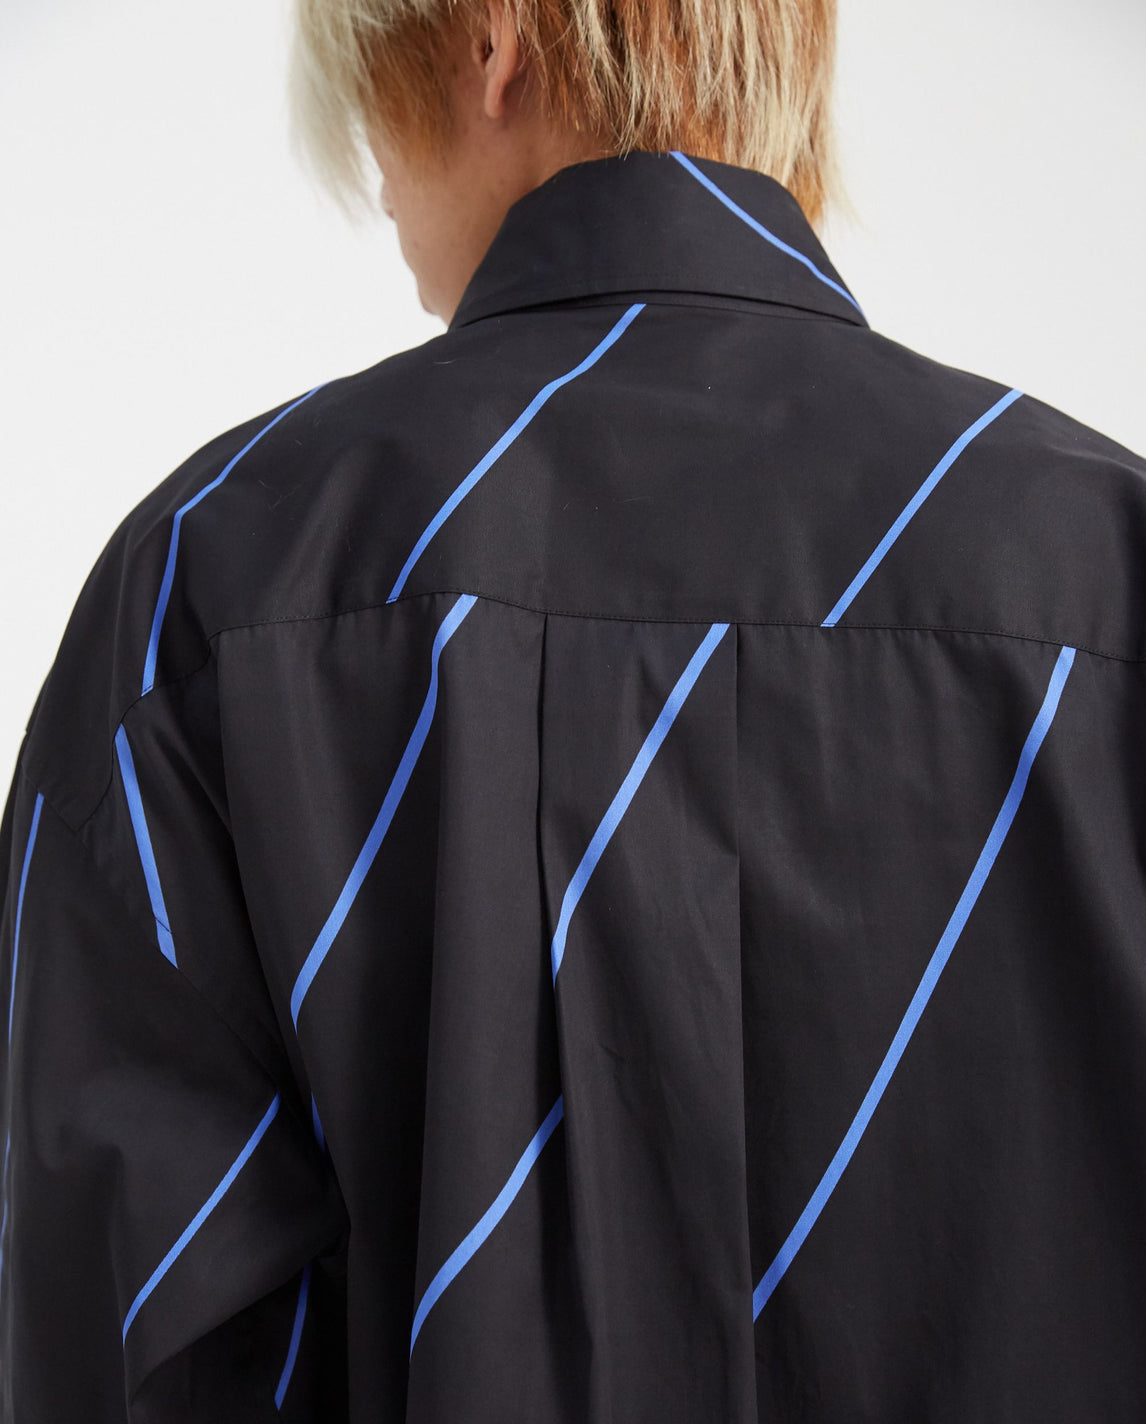 Multi Layered Heart Shirt - Black/Blue MENS MARNI